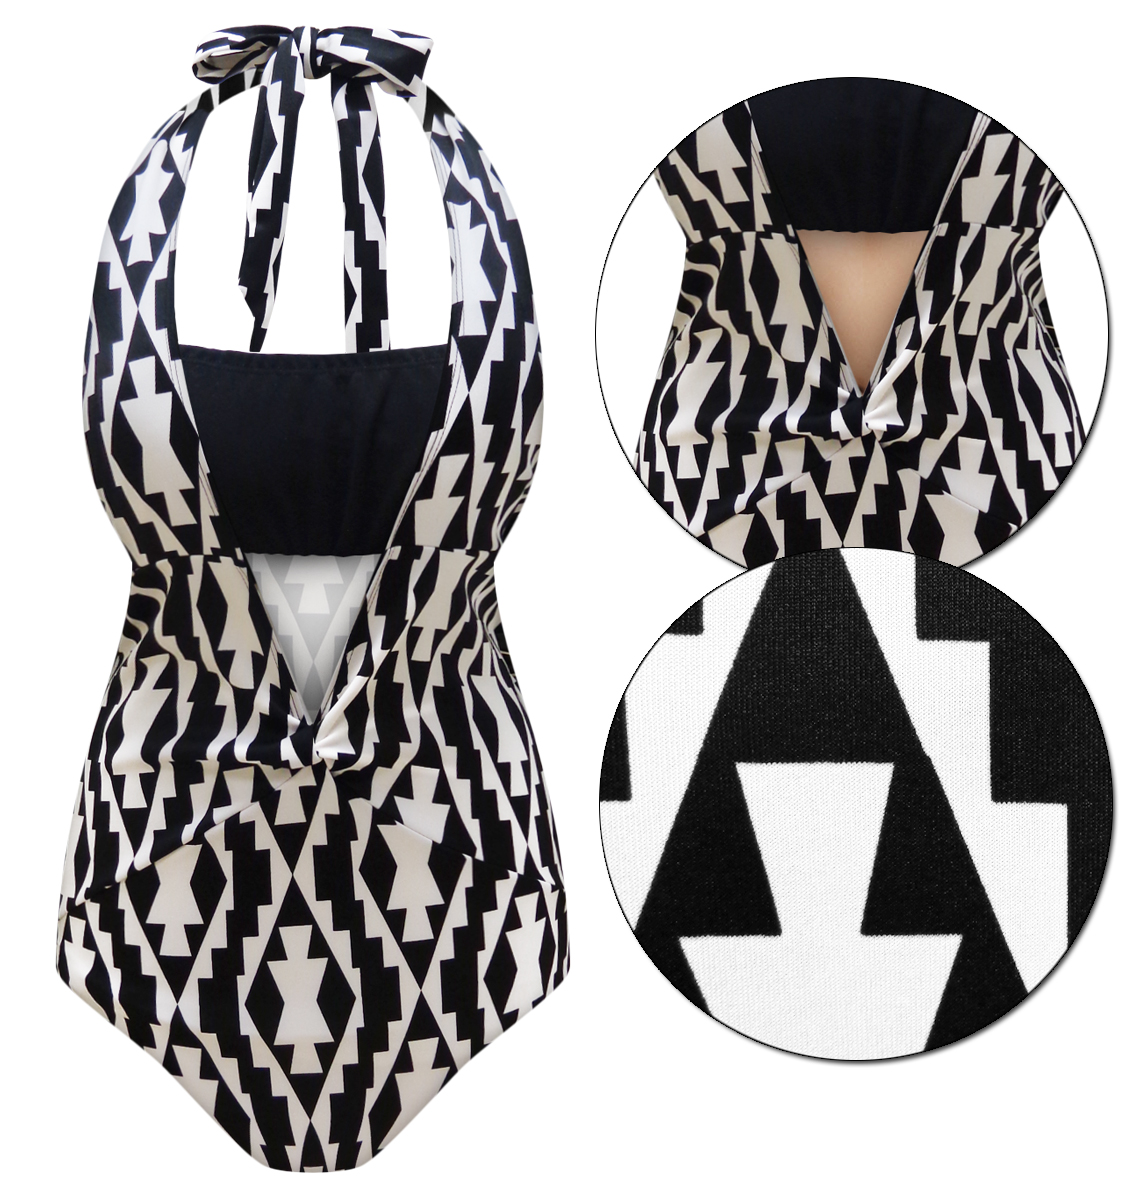 67ccdd4370e Black   White Geometric Print One-Piece Plus Size   Supersize Swimsuit 0x  1x 2x 3x 4x 5x 6x 7x 8x